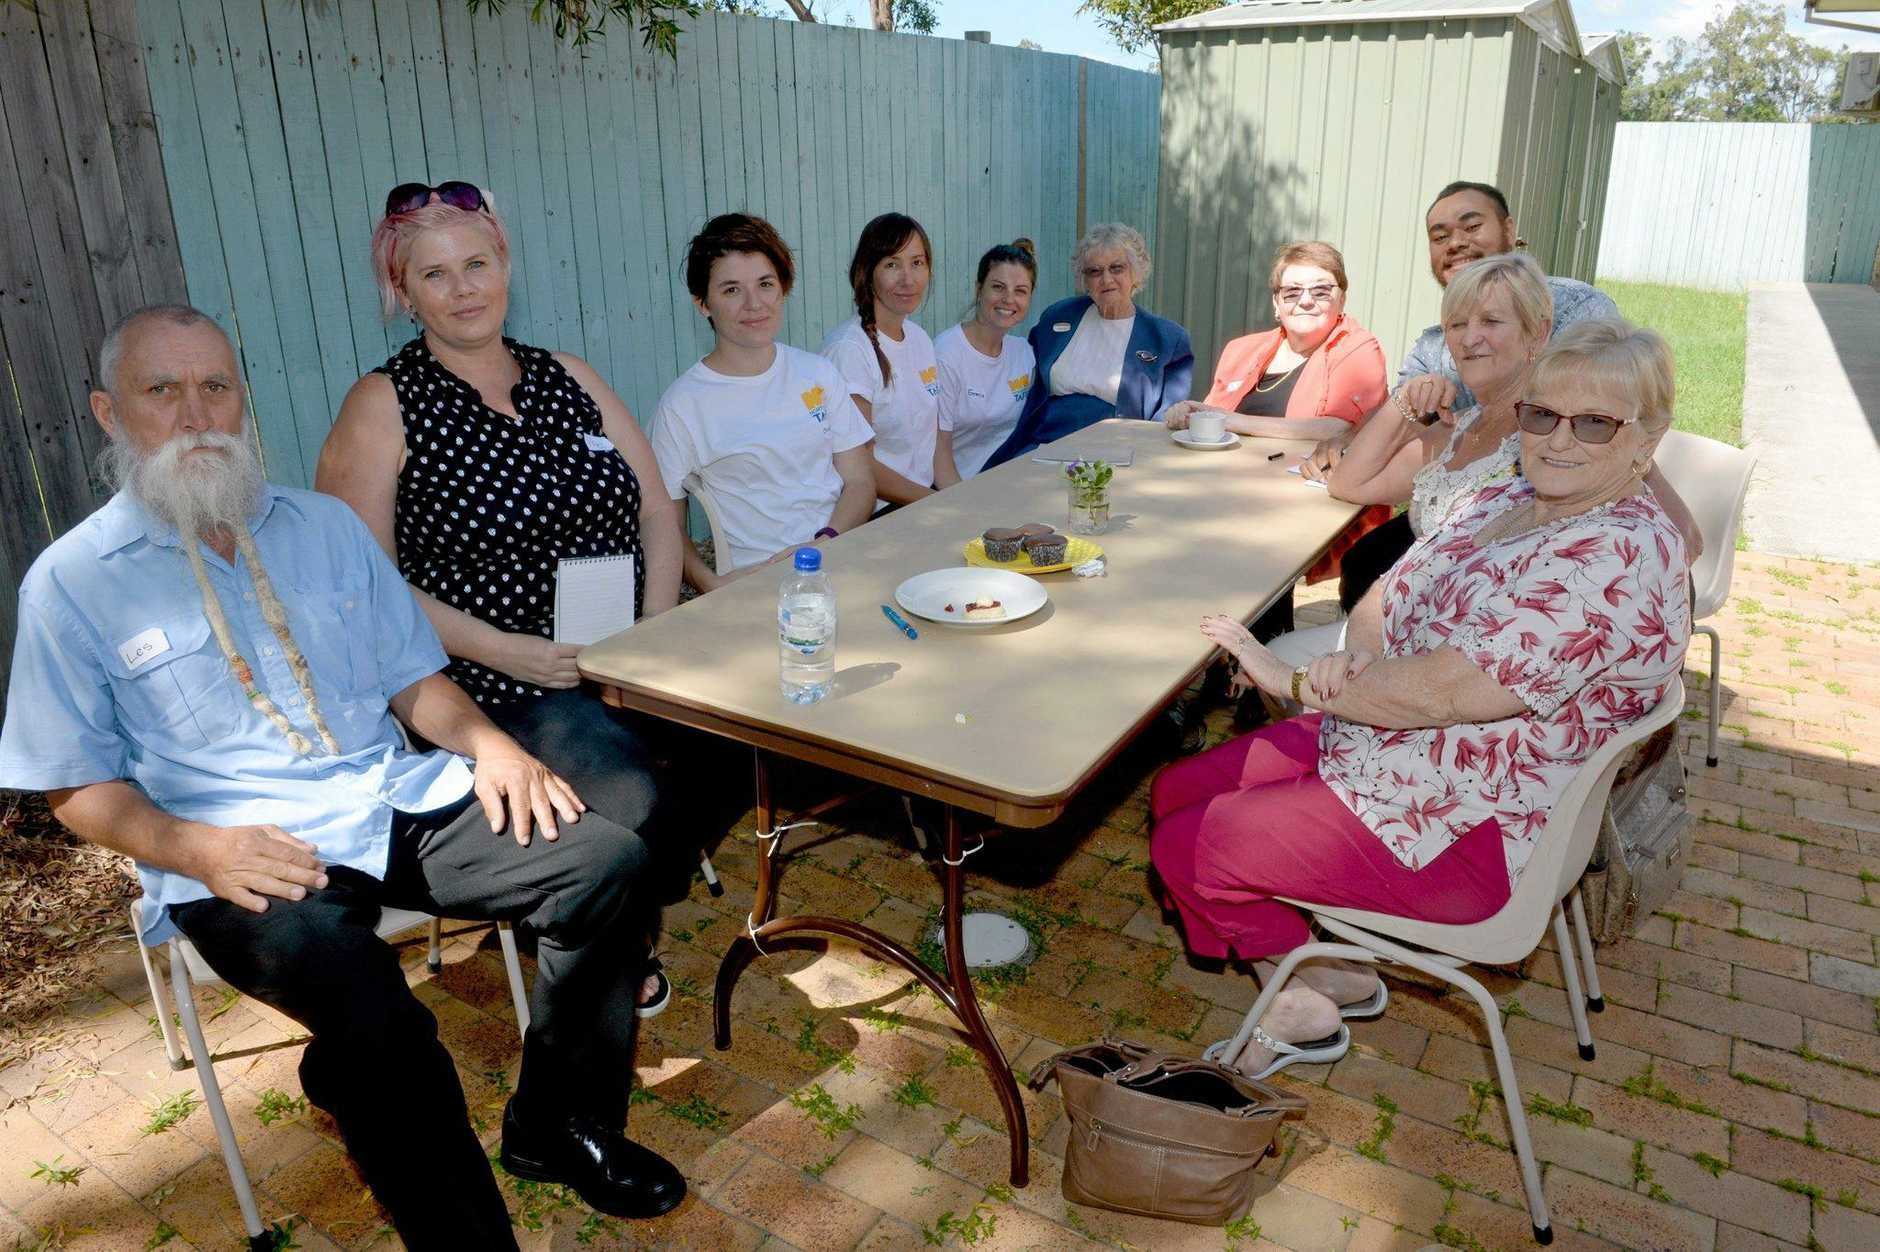 Red Cross volunteers, TAFE students and community members gathered for the Seniors Week 'Memory Lane' event at Tweed Heads South Community Care Centre on Tuesday morning.